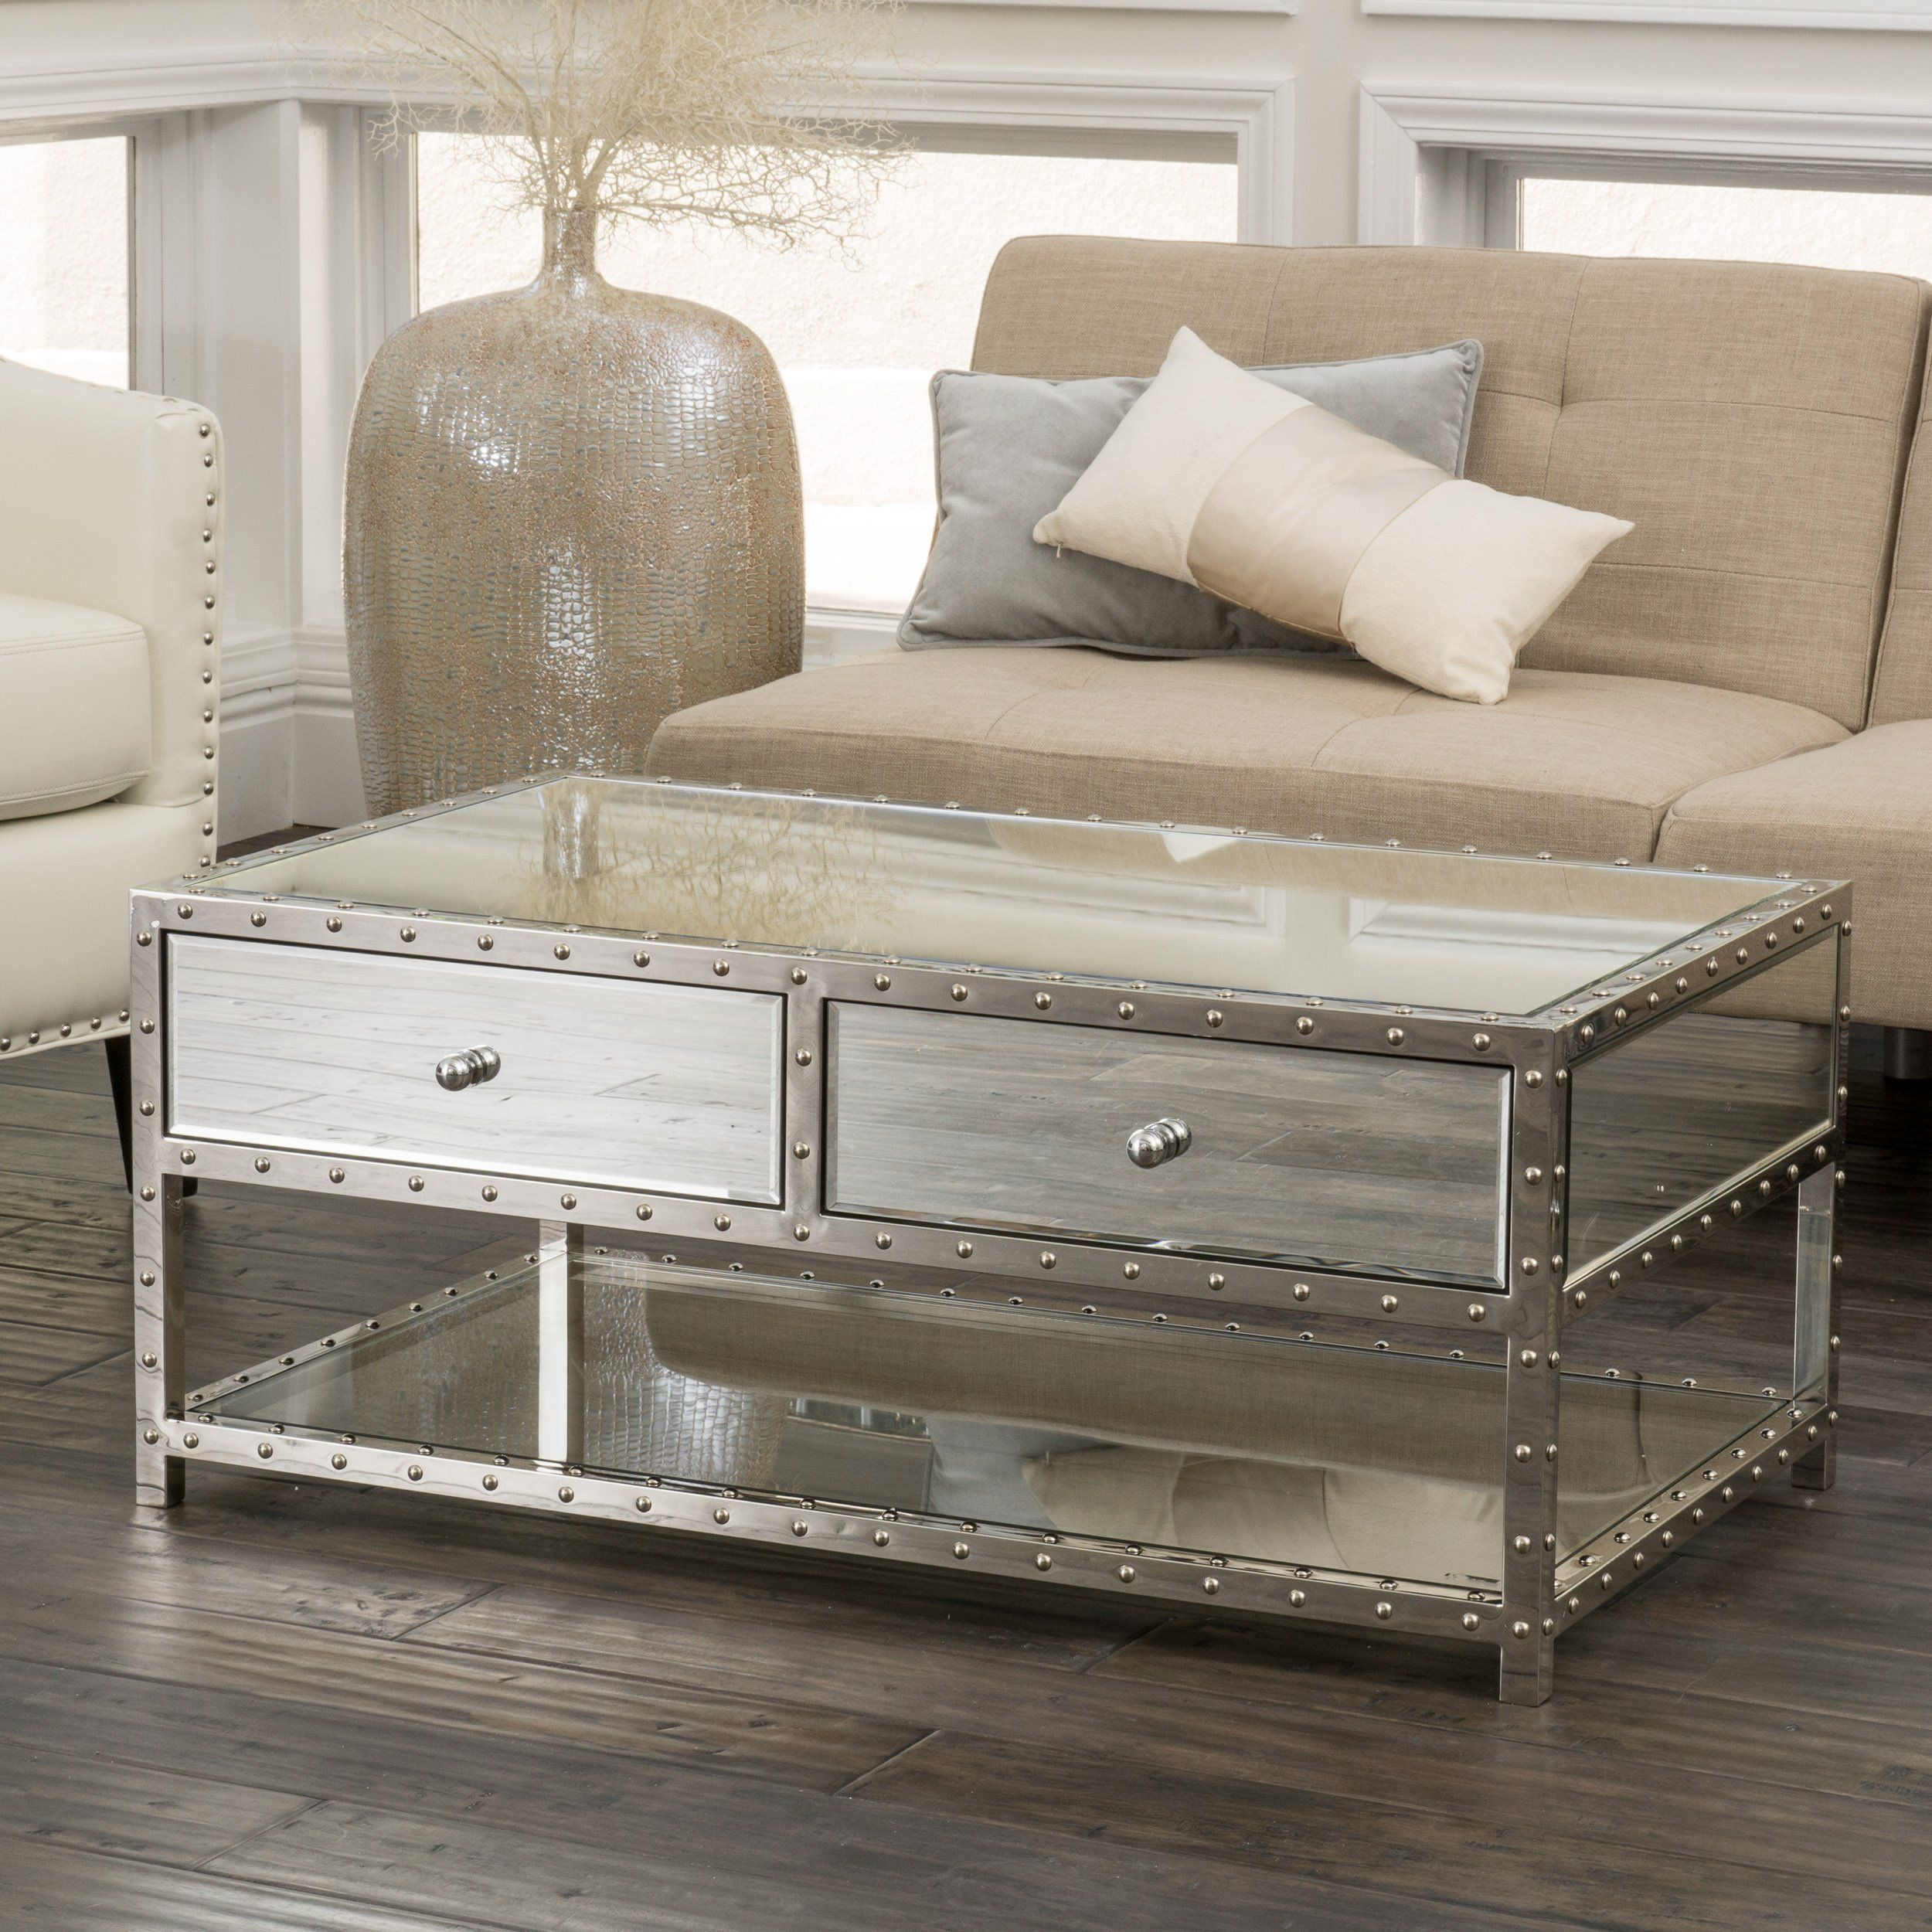 Ryanne Studded Mirrored 2 Drawer Coffee Table Mirrored Coffee